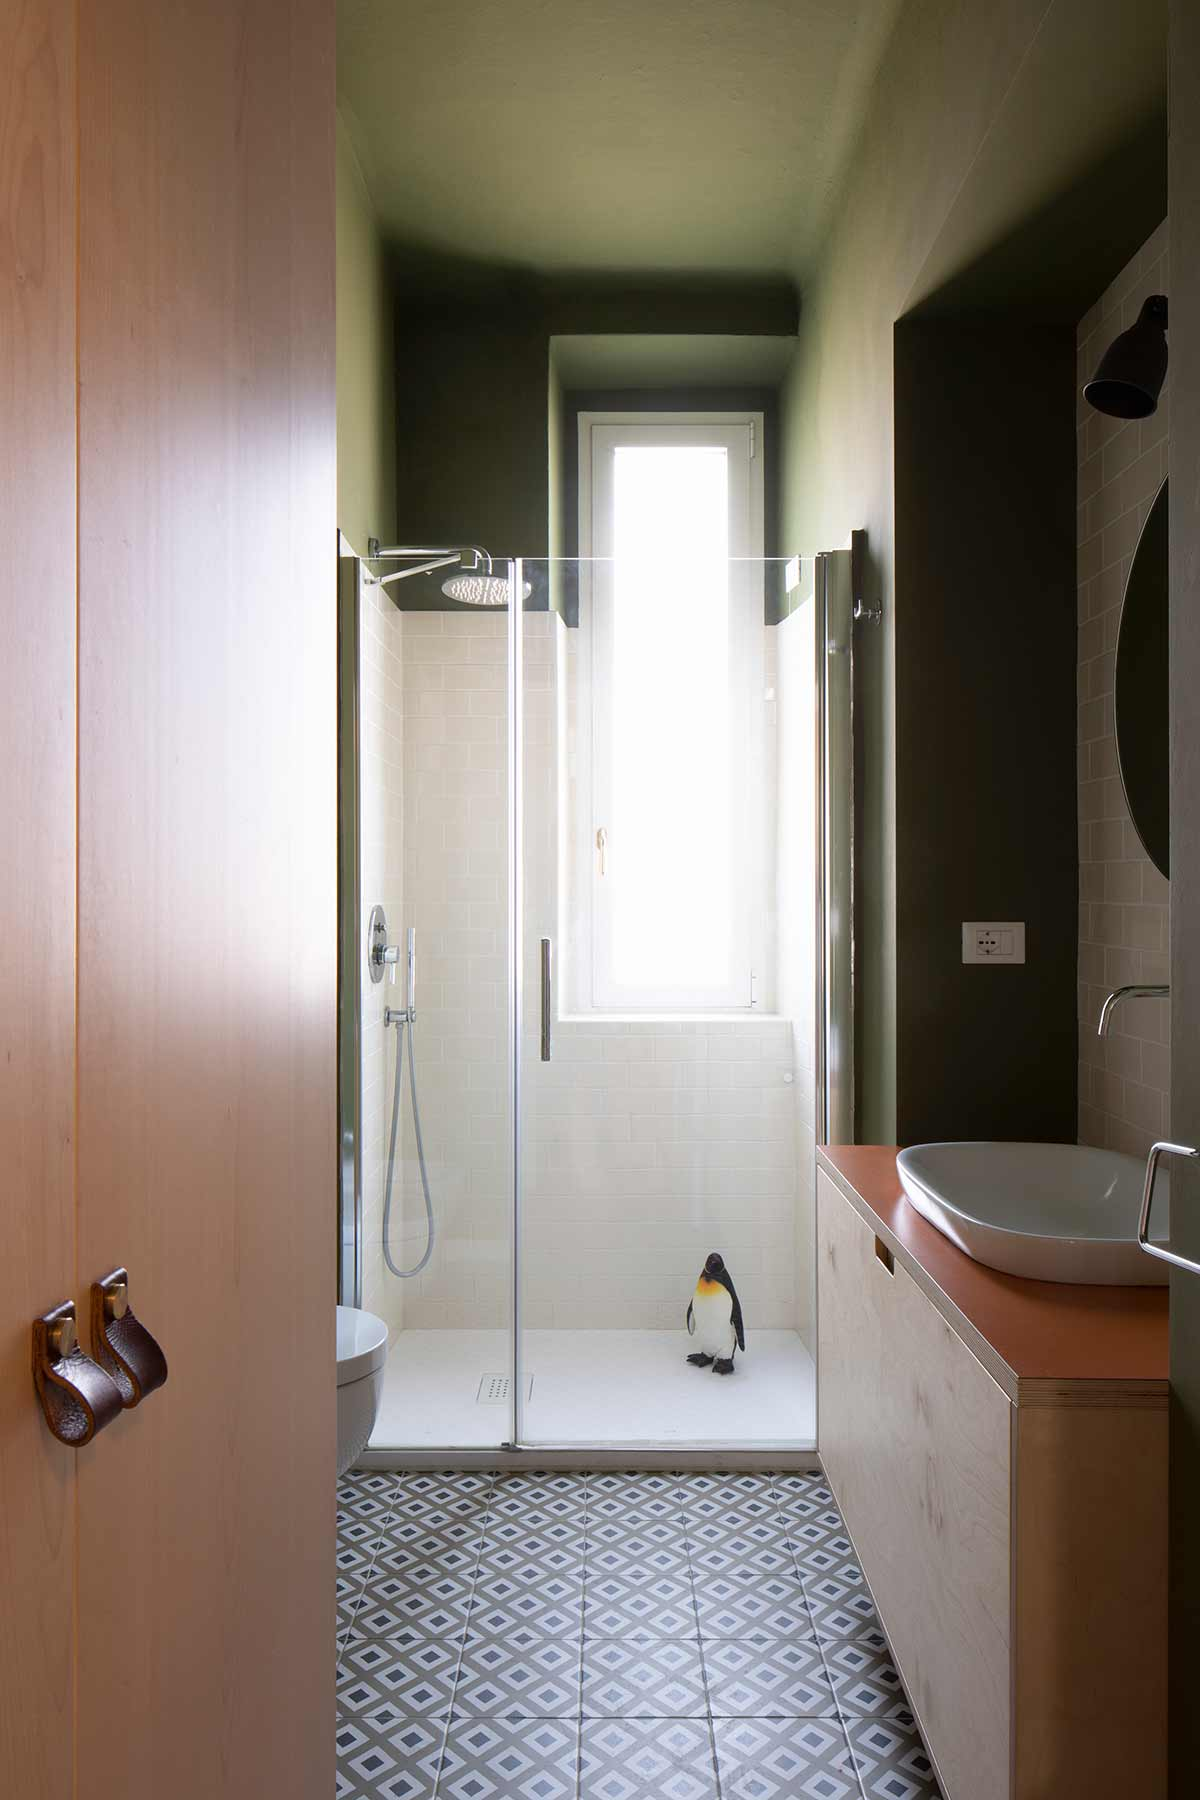 kickoffice casa dgp bathroom green shower light window